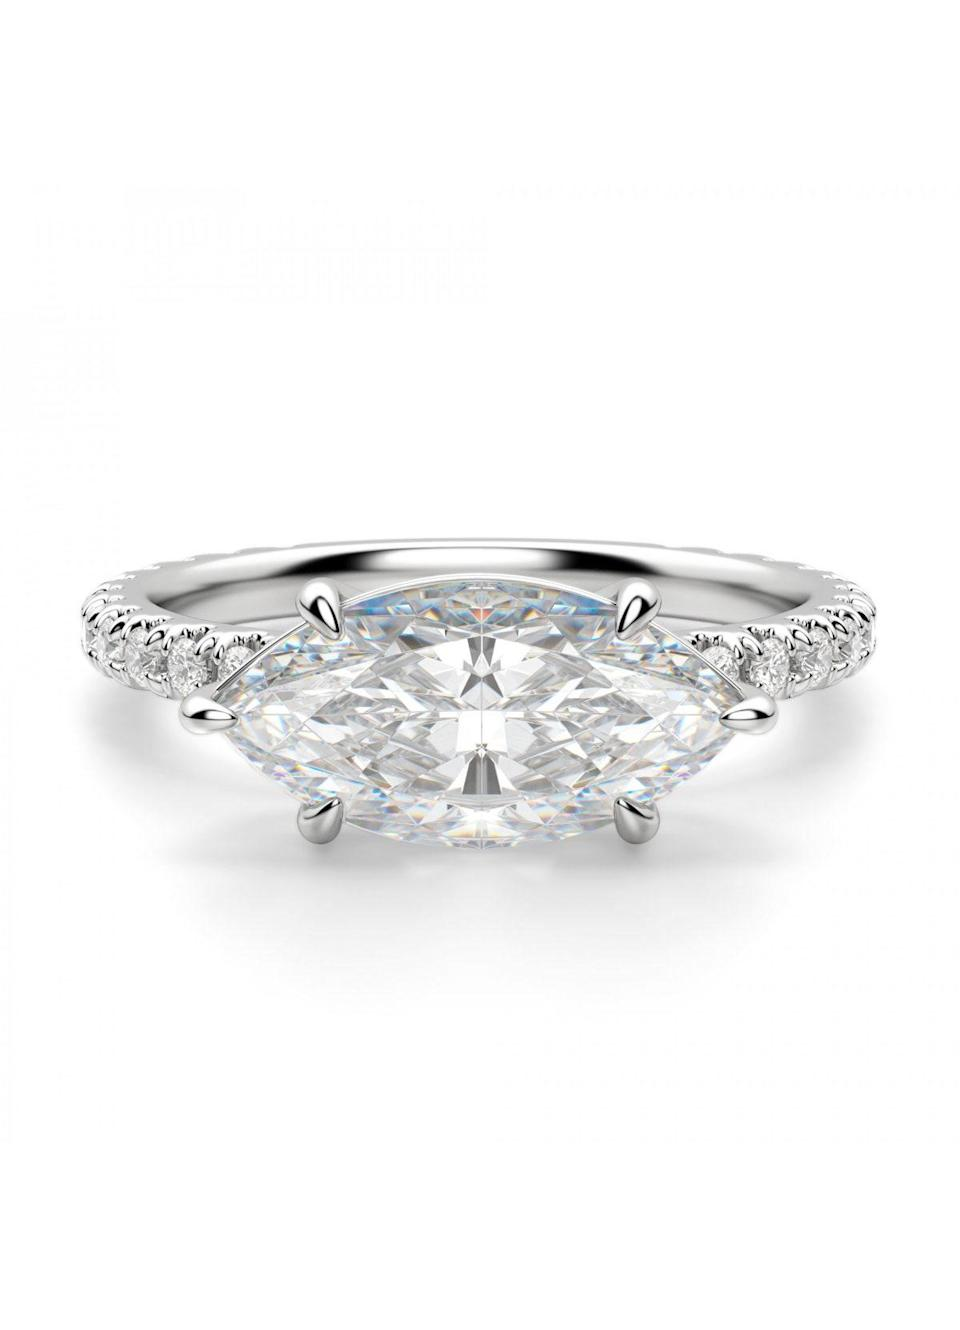 """""""Surprisingly, round stones are our least popular shape,"""" Nicholson says. If that tracks for you, this design brings in two trending engagement ring styles: a marquise-cut and east-west setting. $1470, Diamond Nexus. <a href=""""https://www.diamondnexus.com/east-west-accent-marquise-engagement-ring.html"""" rel=""""nofollow noopener"""" target=""""_blank"""" data-ylk=""""slk:Get it now!"""" class=""""link rapid-noclick-resp"""">Get it now!</a>"""